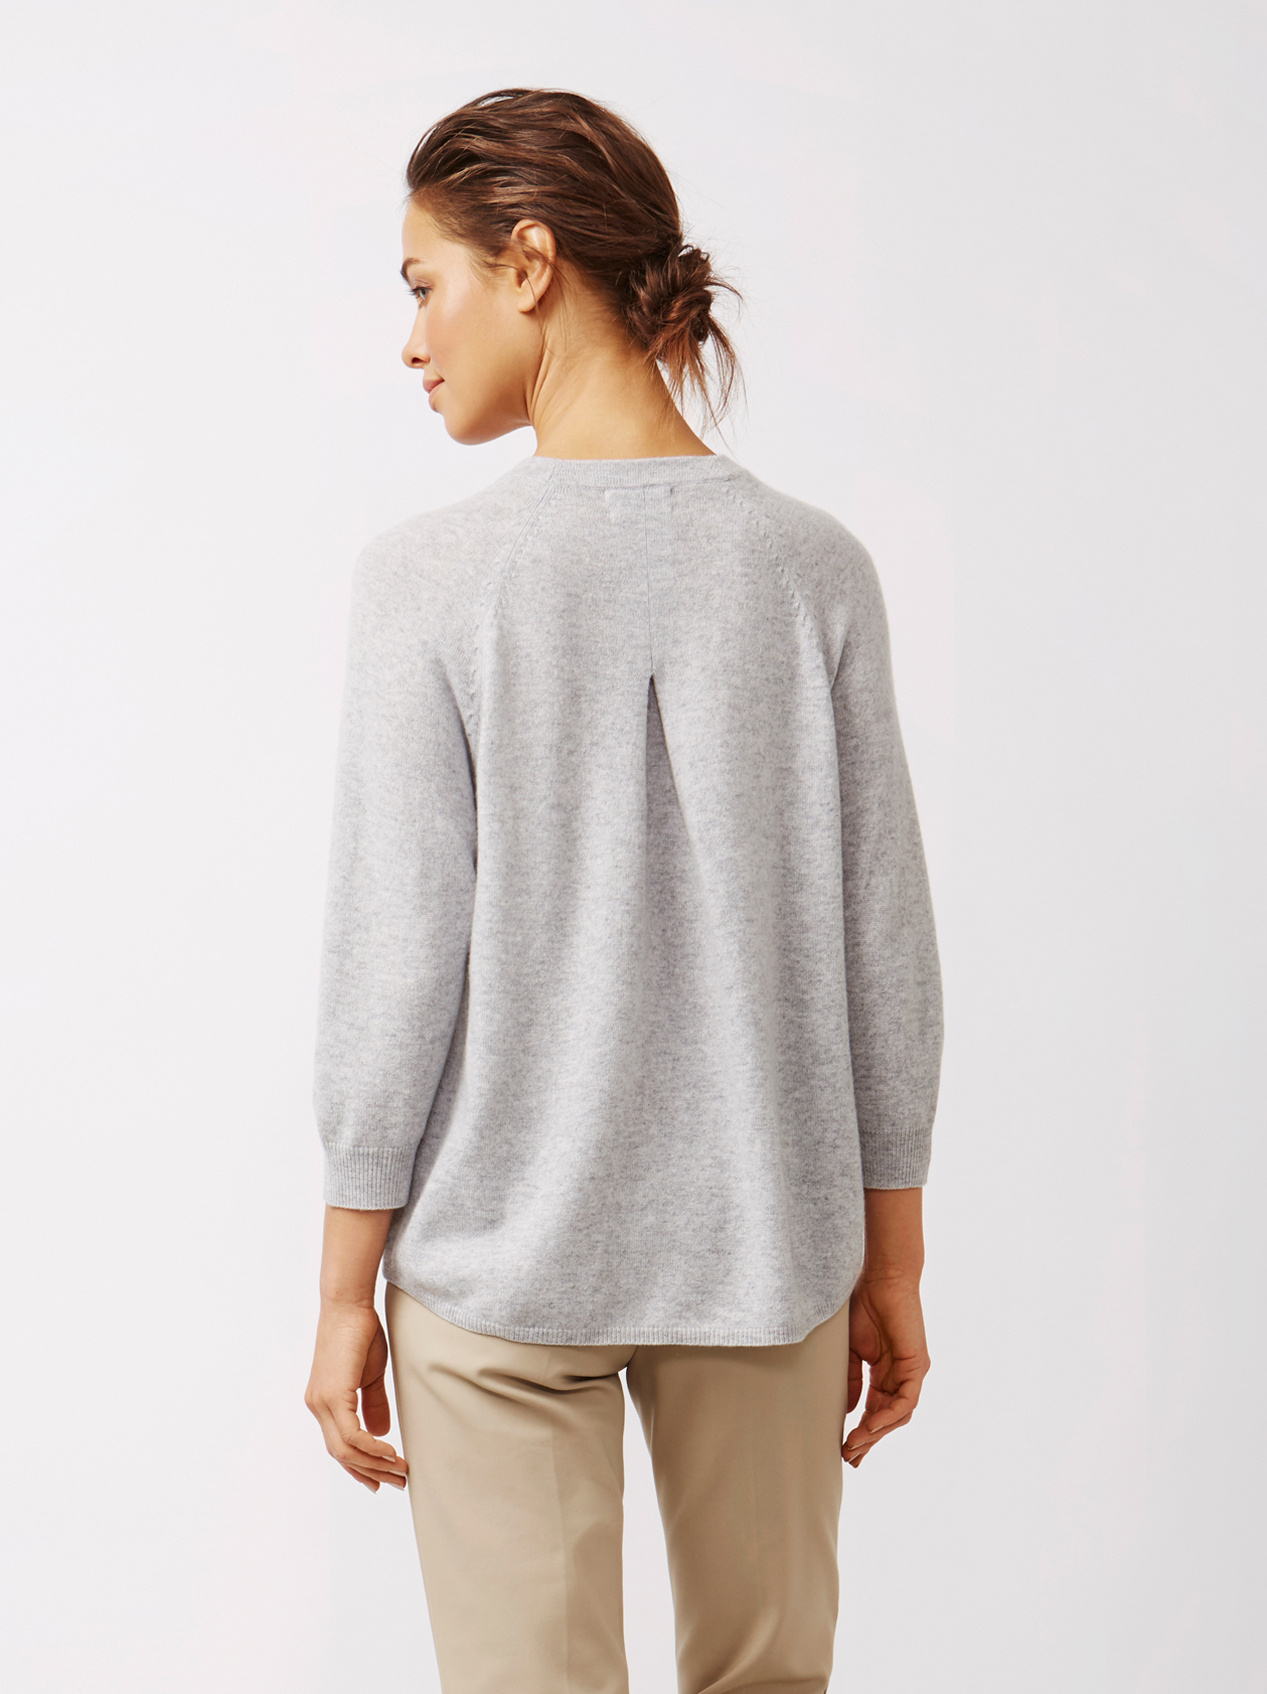 Soft Goat Women's Rounded Sweater Light Grey